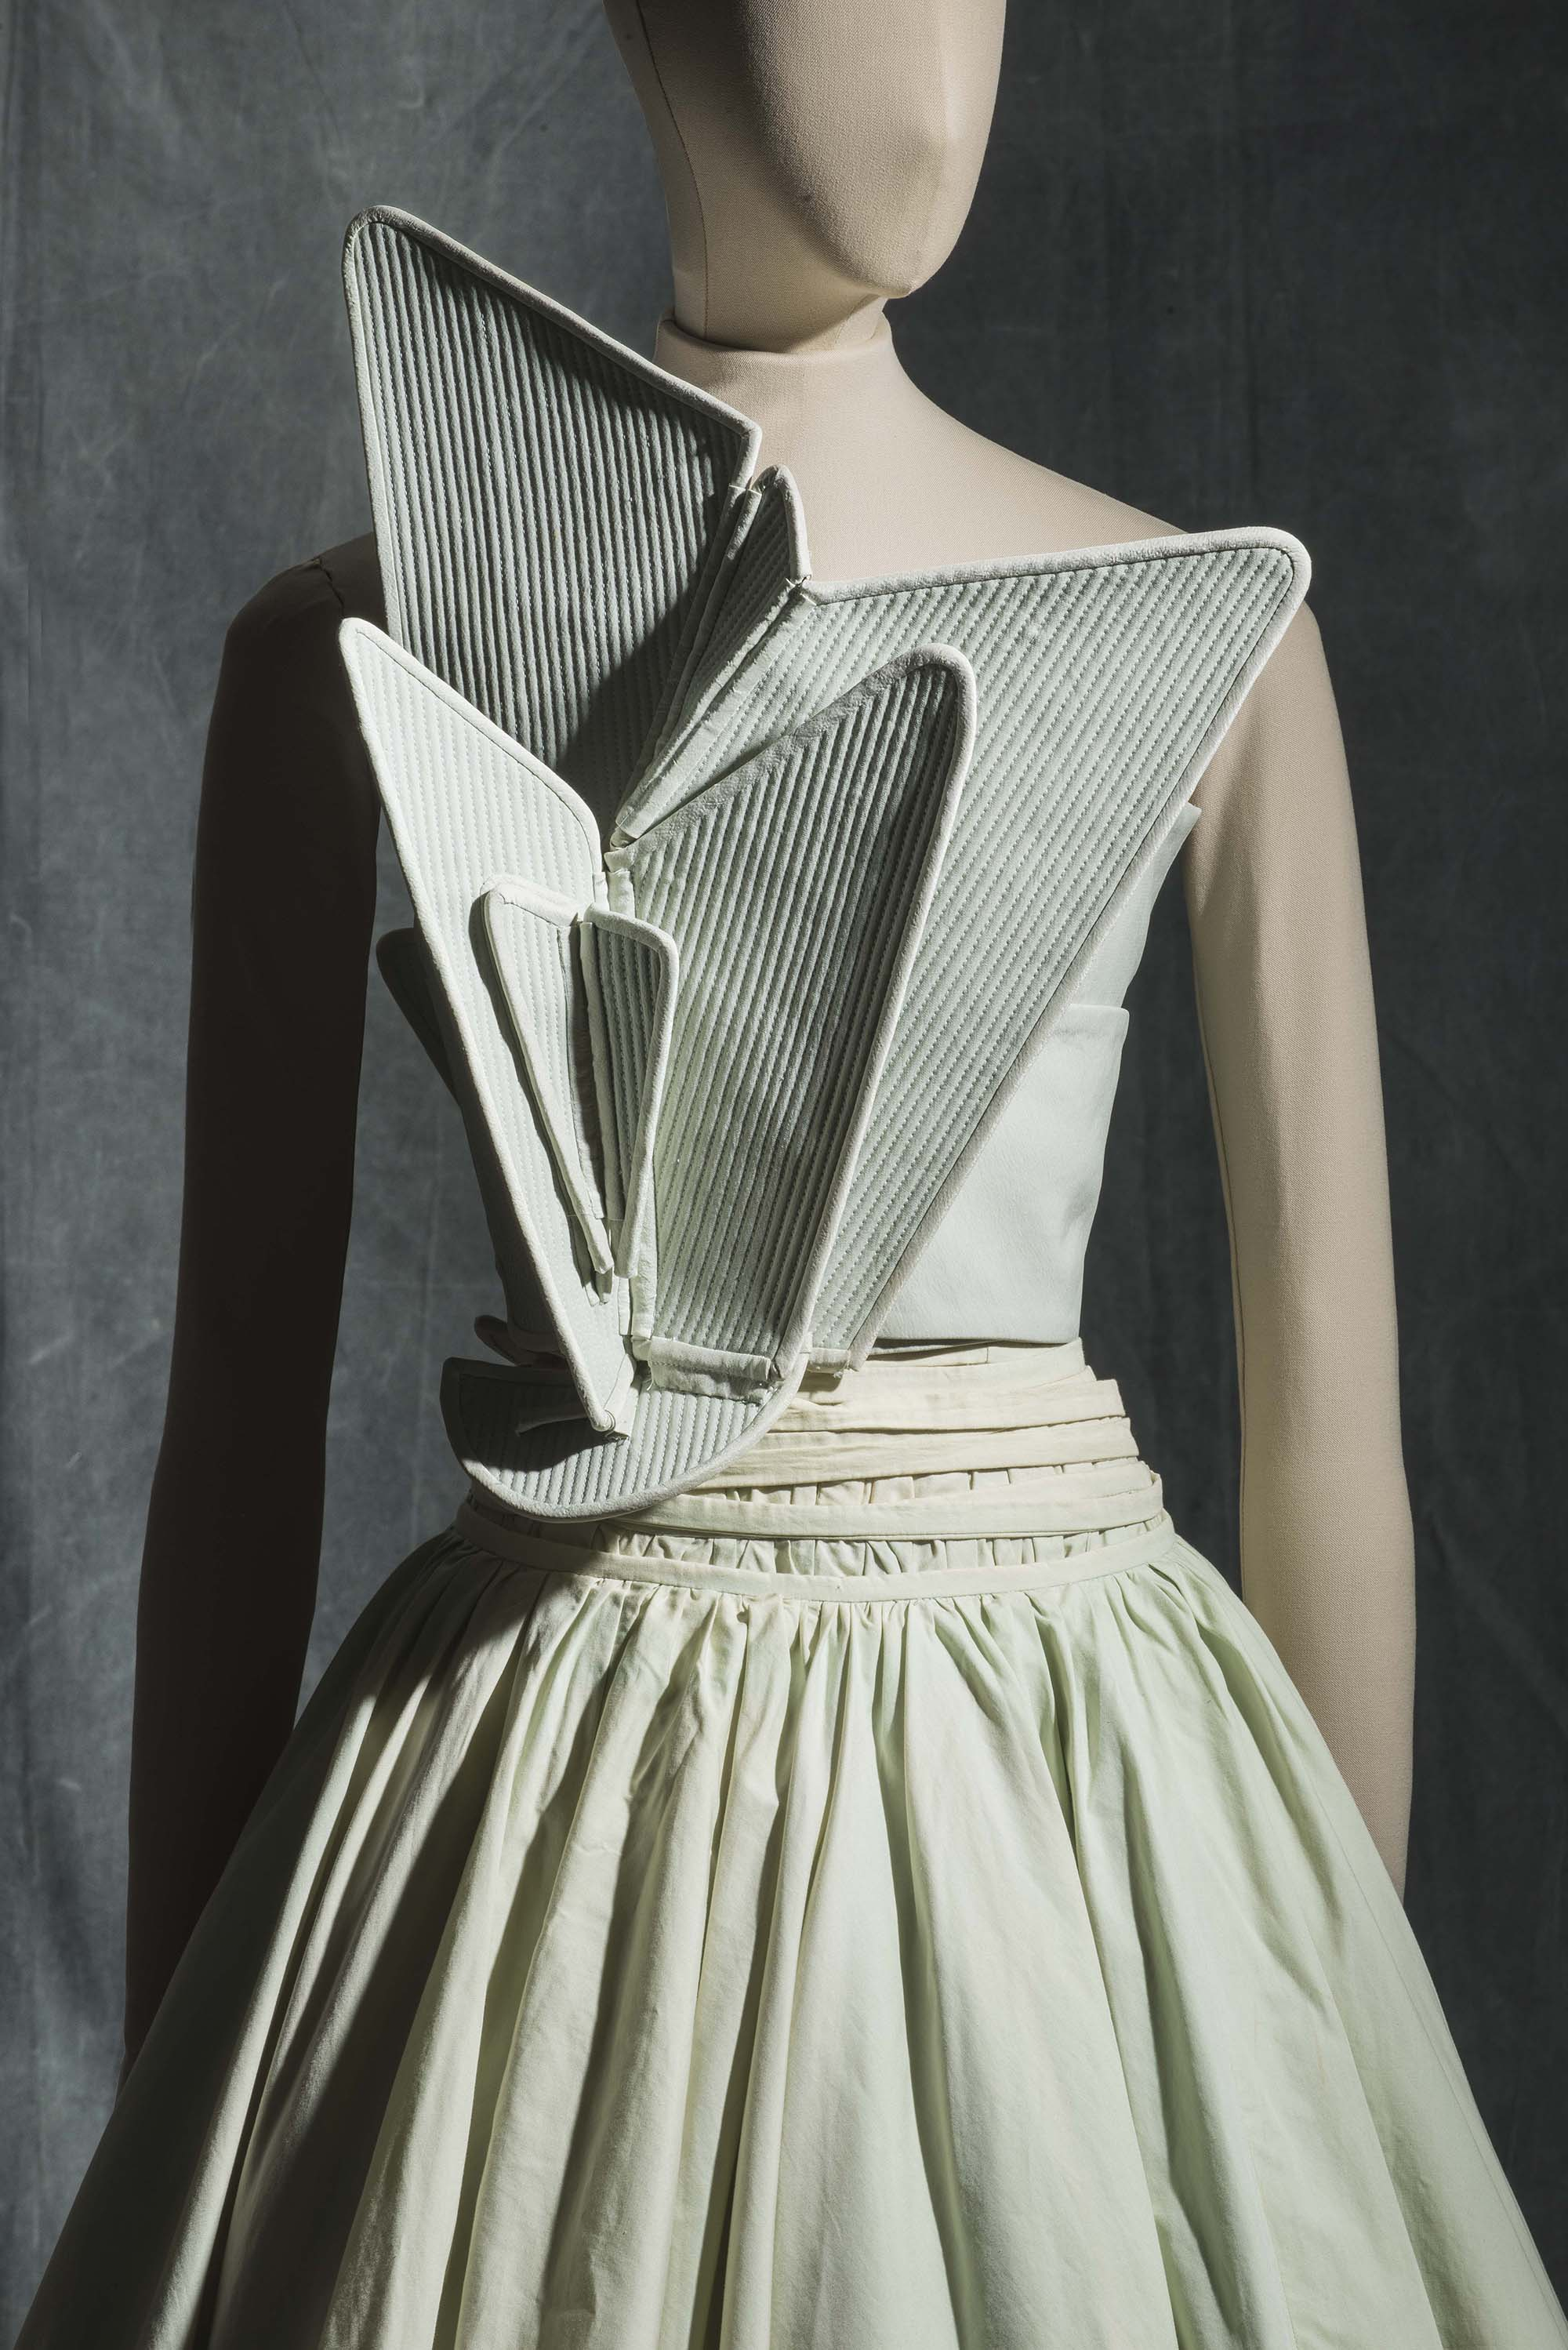 Hussein Chalayan, dress, spring-summer 2000. Source: Les Arts Décoratifs, Jean Tholance